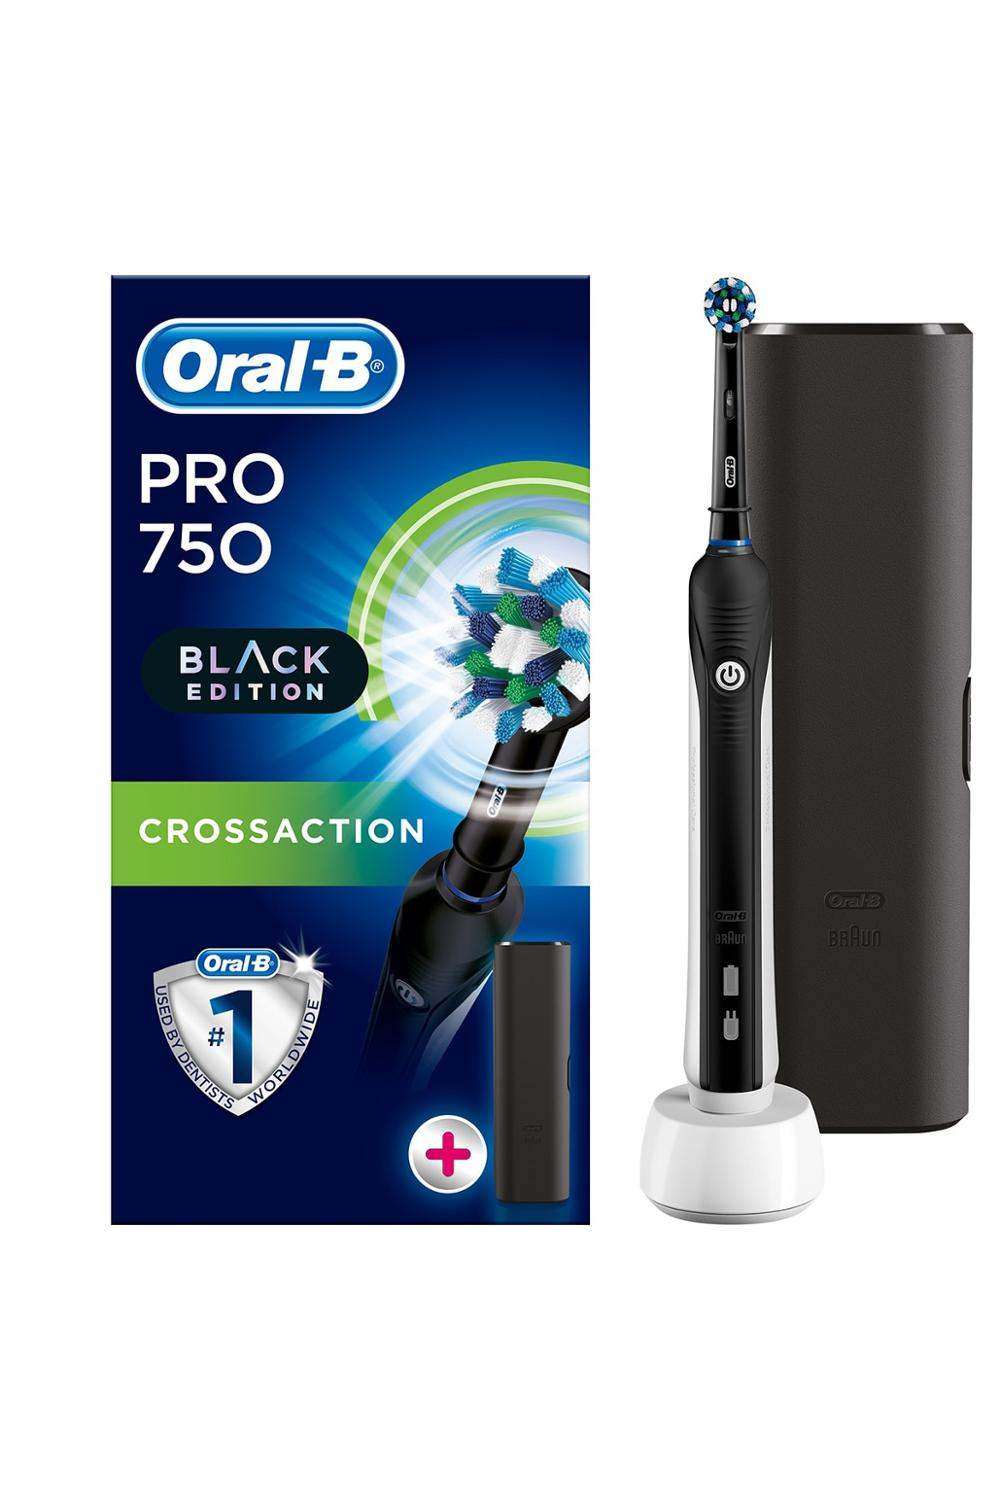 Oral B Pro 750 Black CrossAction + Travel Case, Braun Electric Tootbrush image